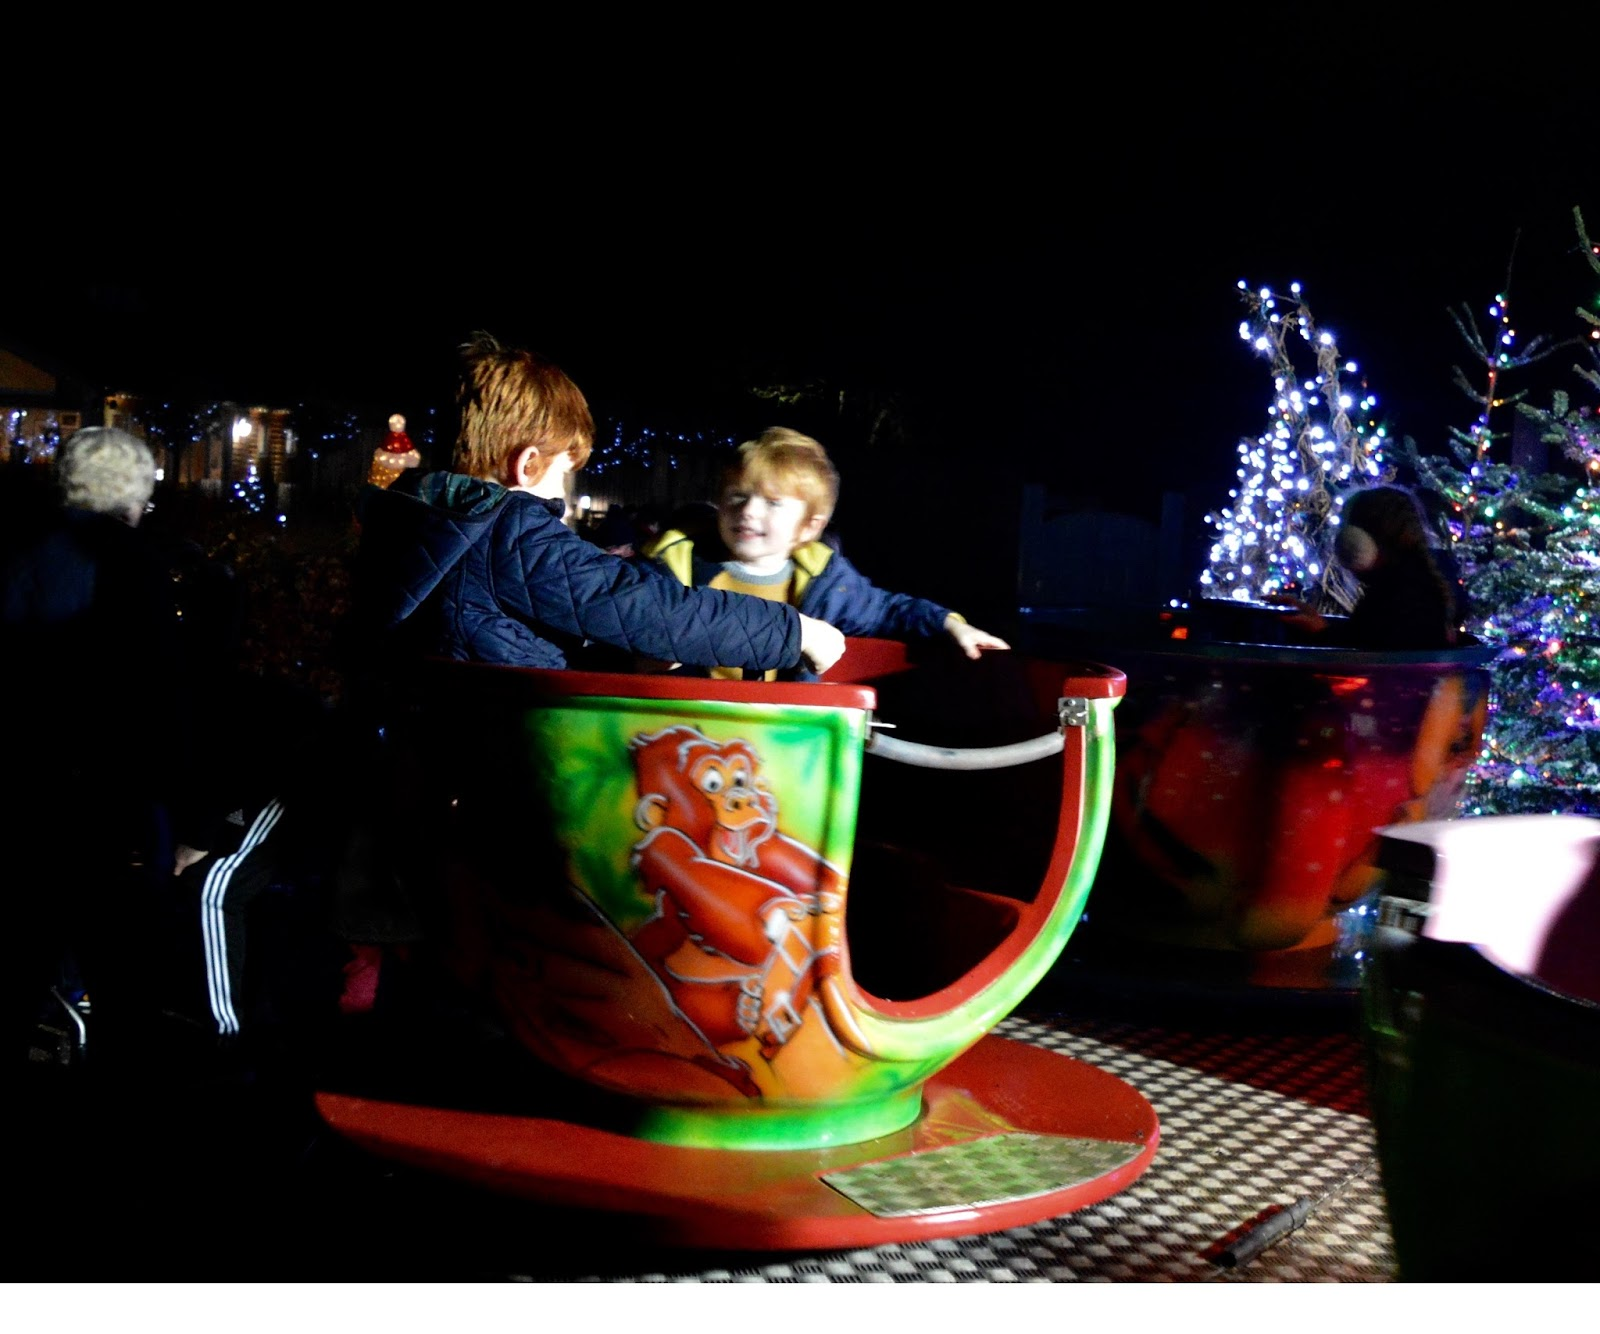 Winter Wonderland Christmas Light Show | A Wynyard Hall Garden Event - A Review - free teacup ride